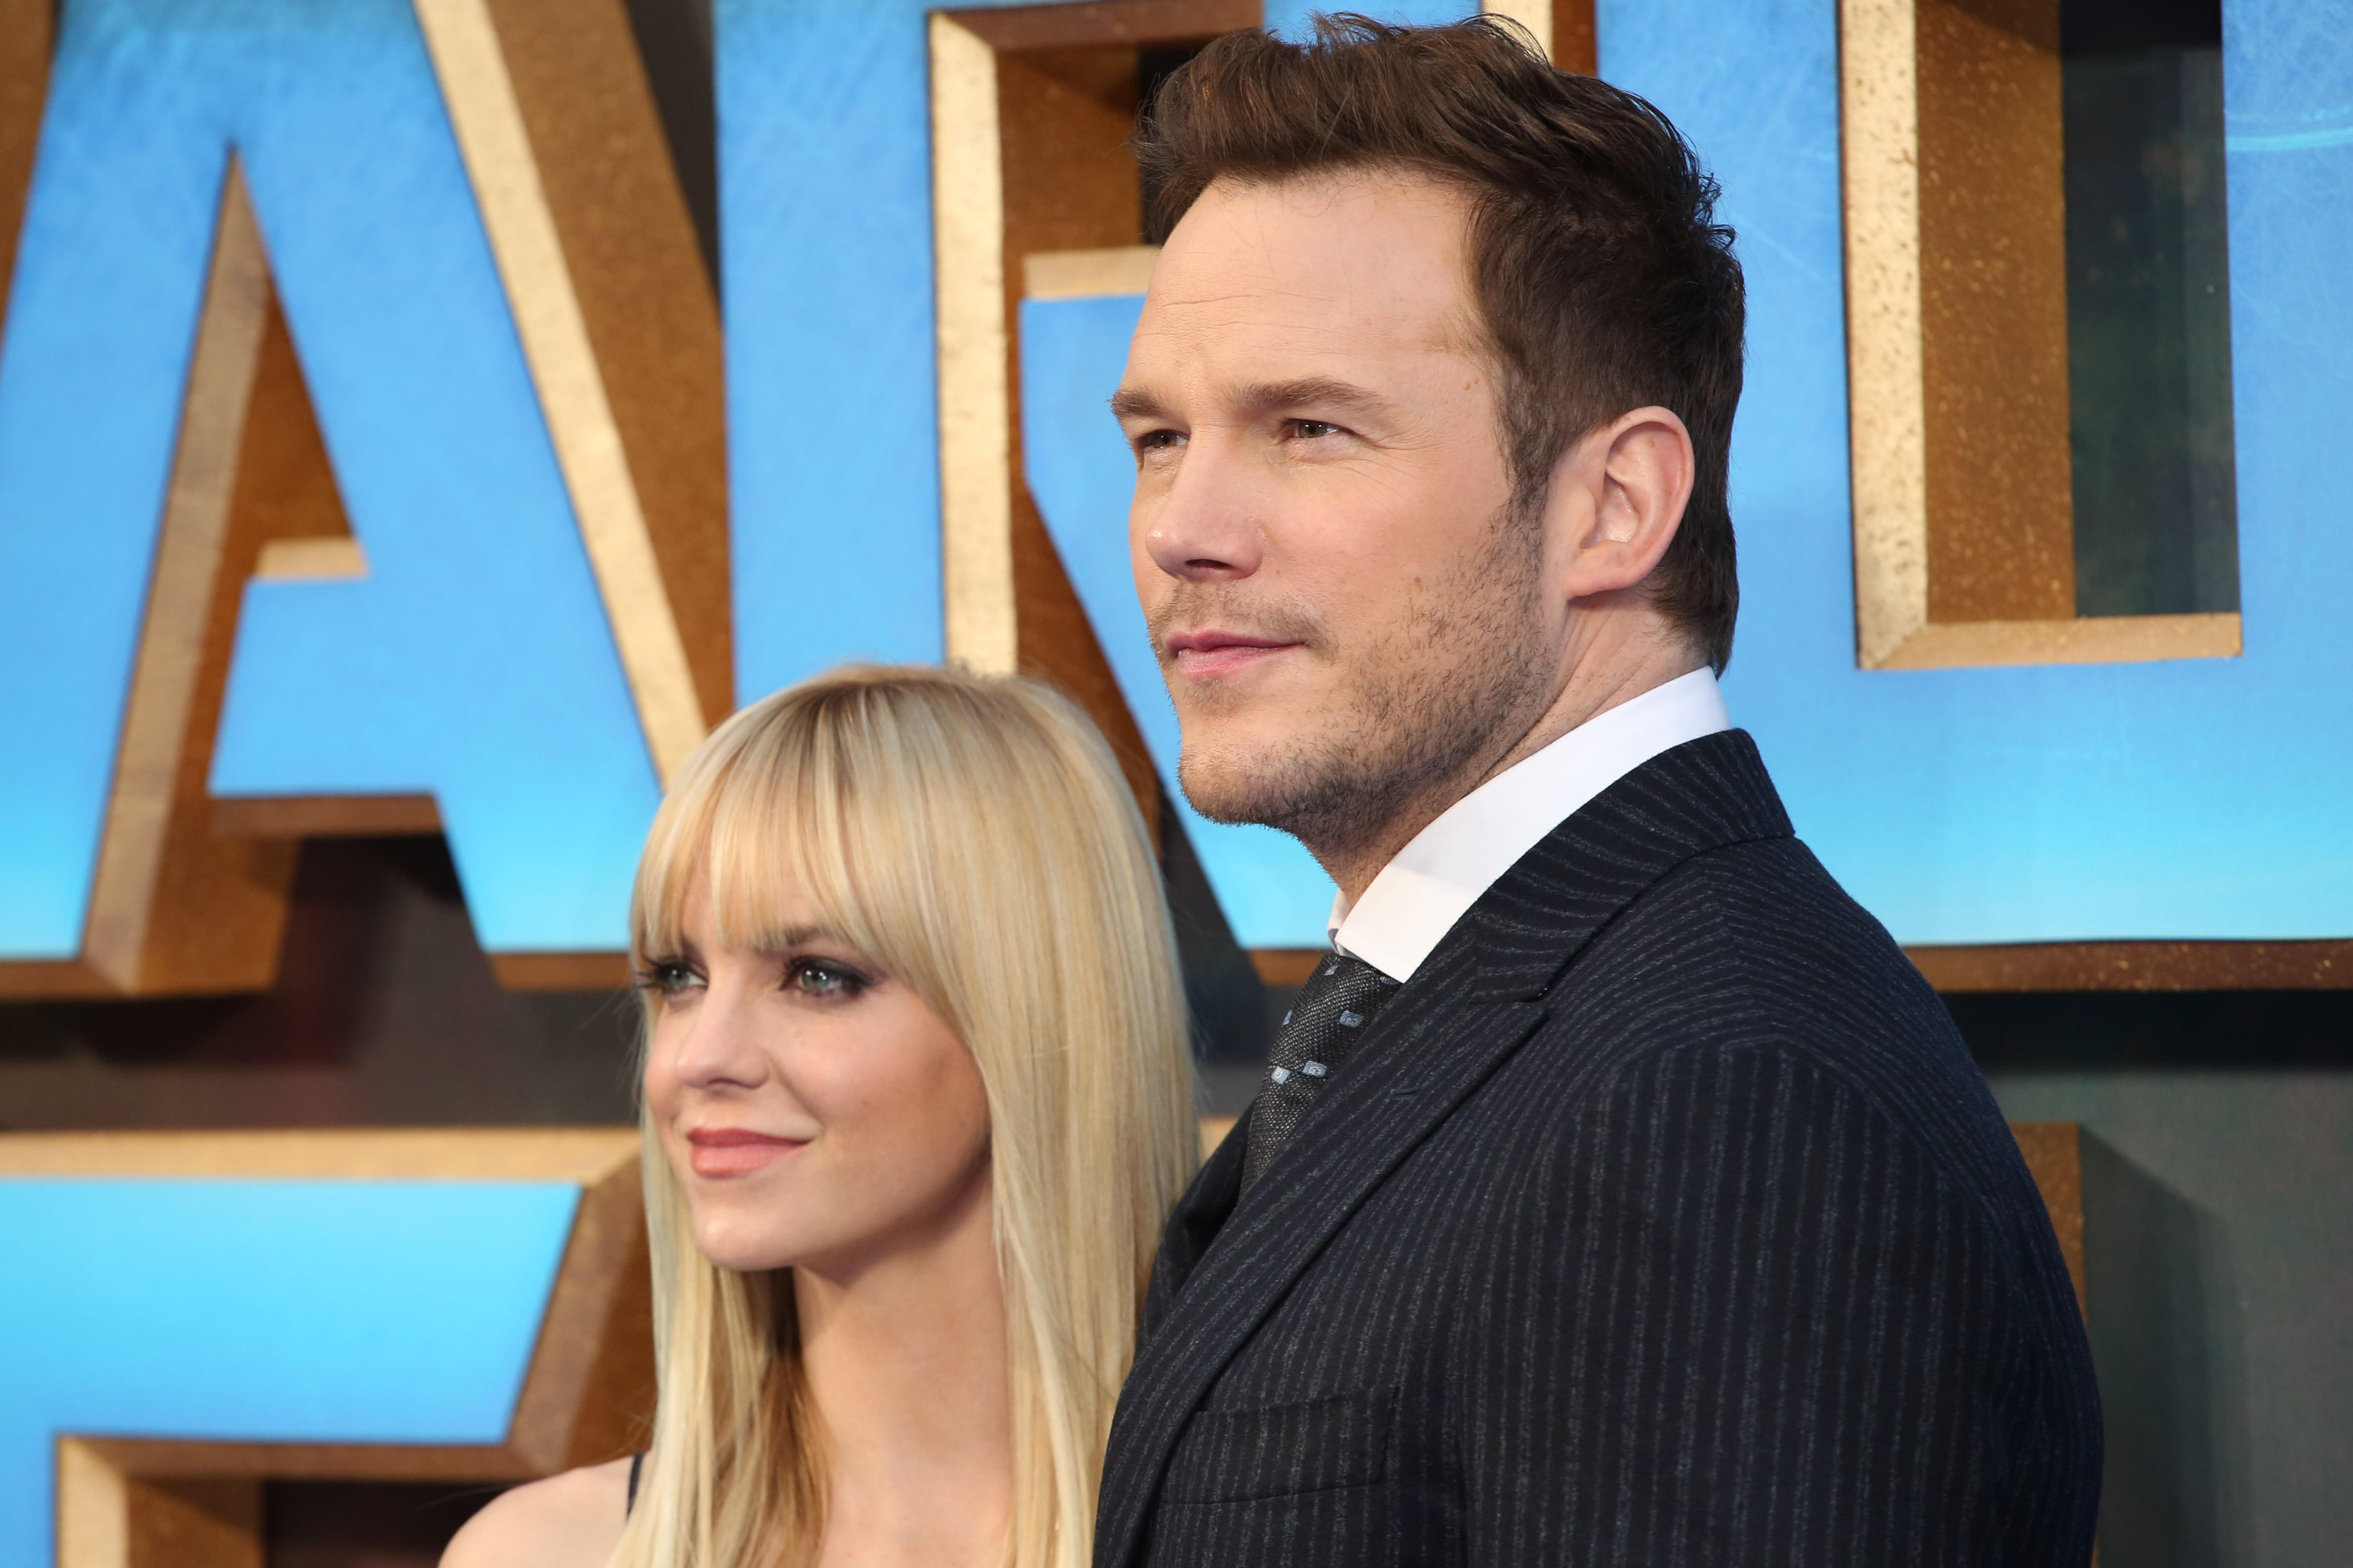 Chris Pratt And Anna Faris Have Finalized Their Divorce ...